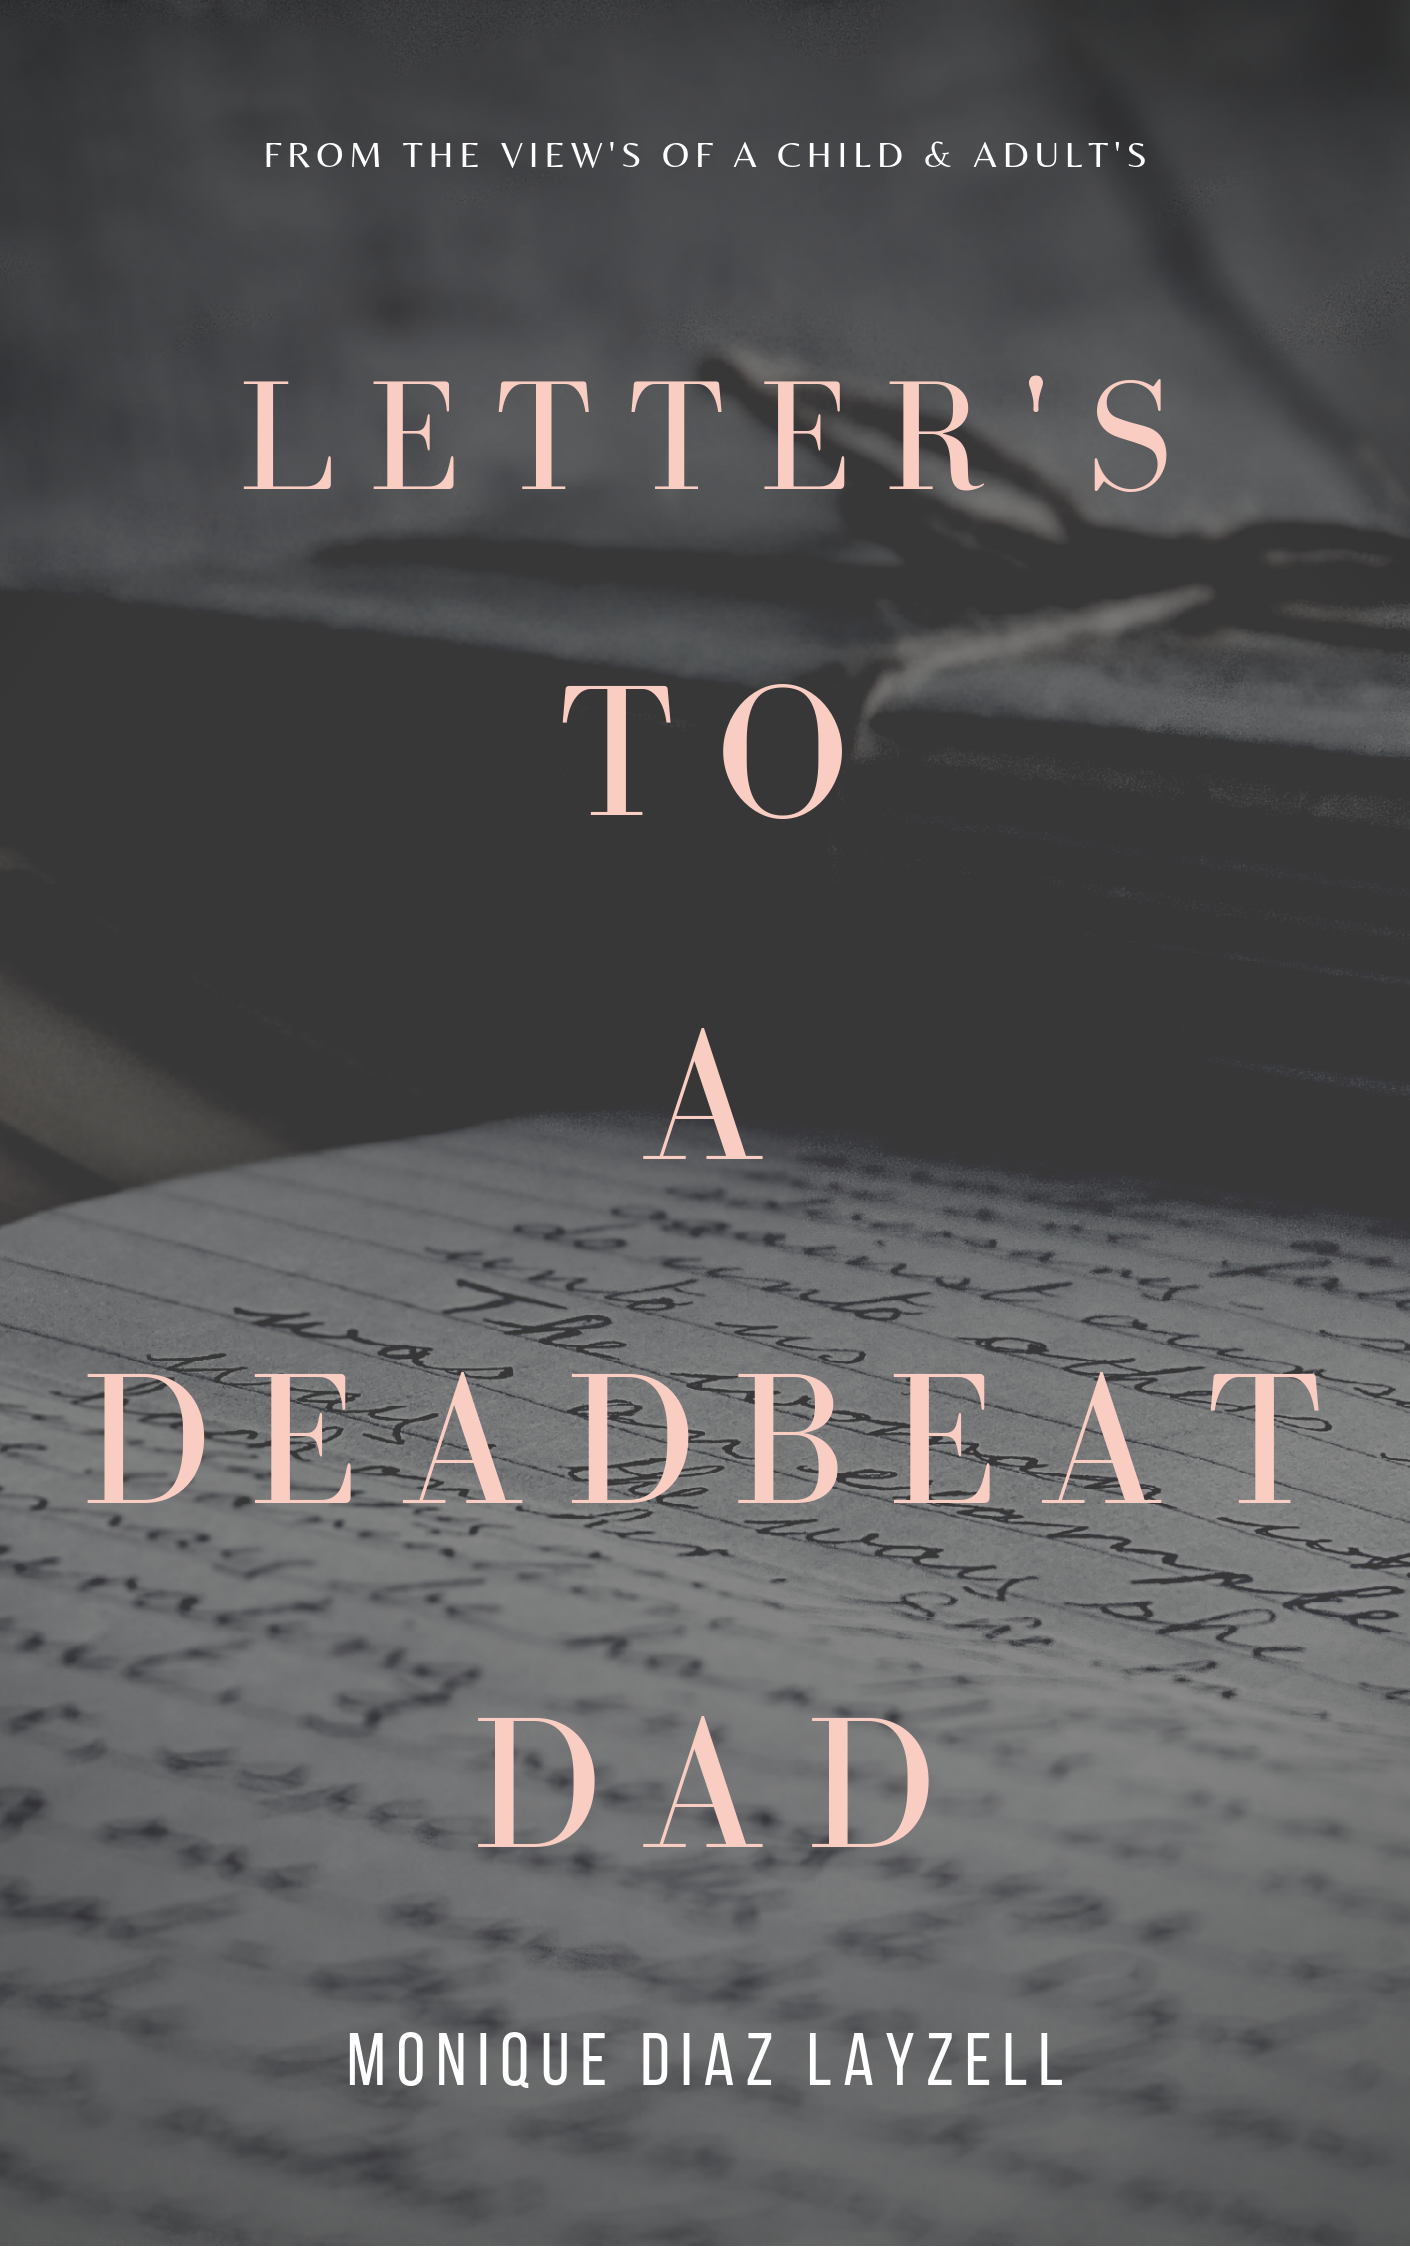 letter's to a deadbeat dad.png